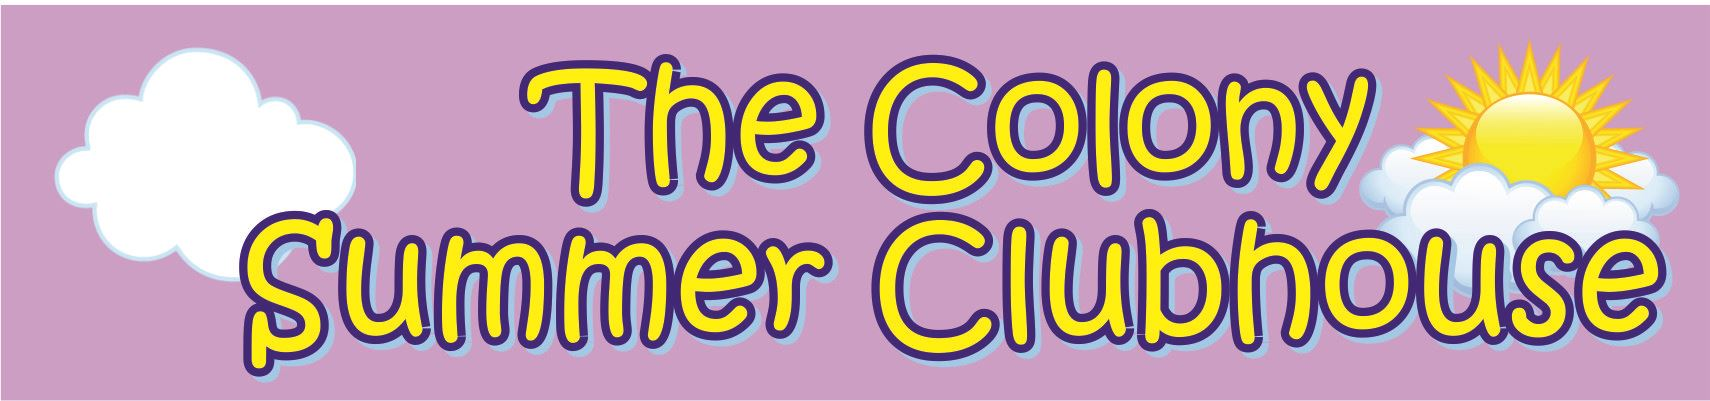 The Colony Summer Clubhouse Logo